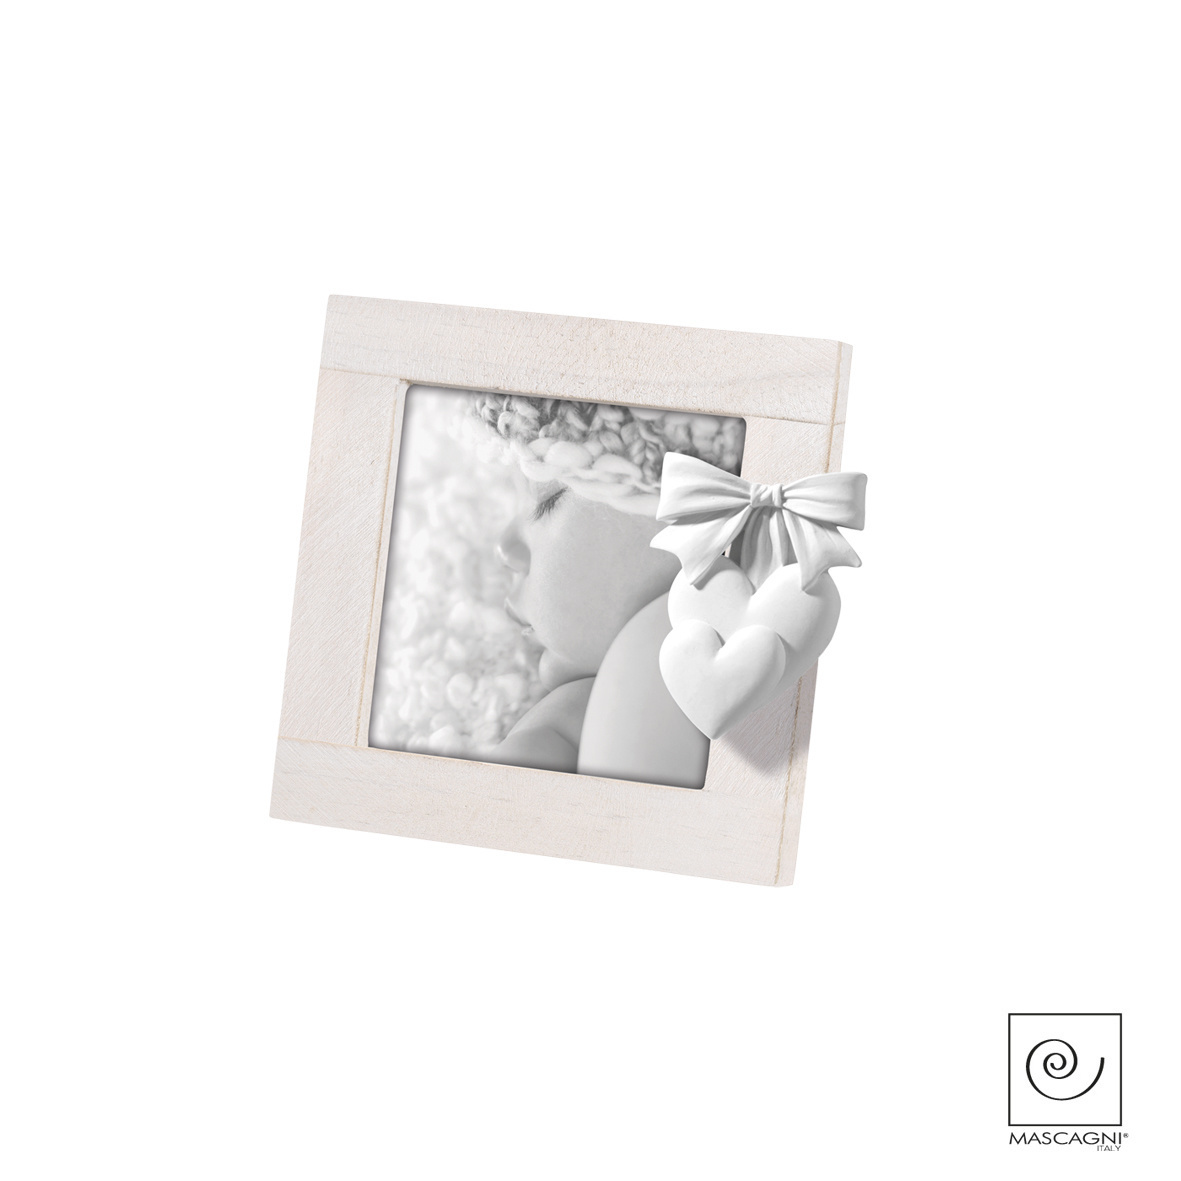 Art Mascagni A648 PHOTO FRAME 13X18 - COL.WHITE